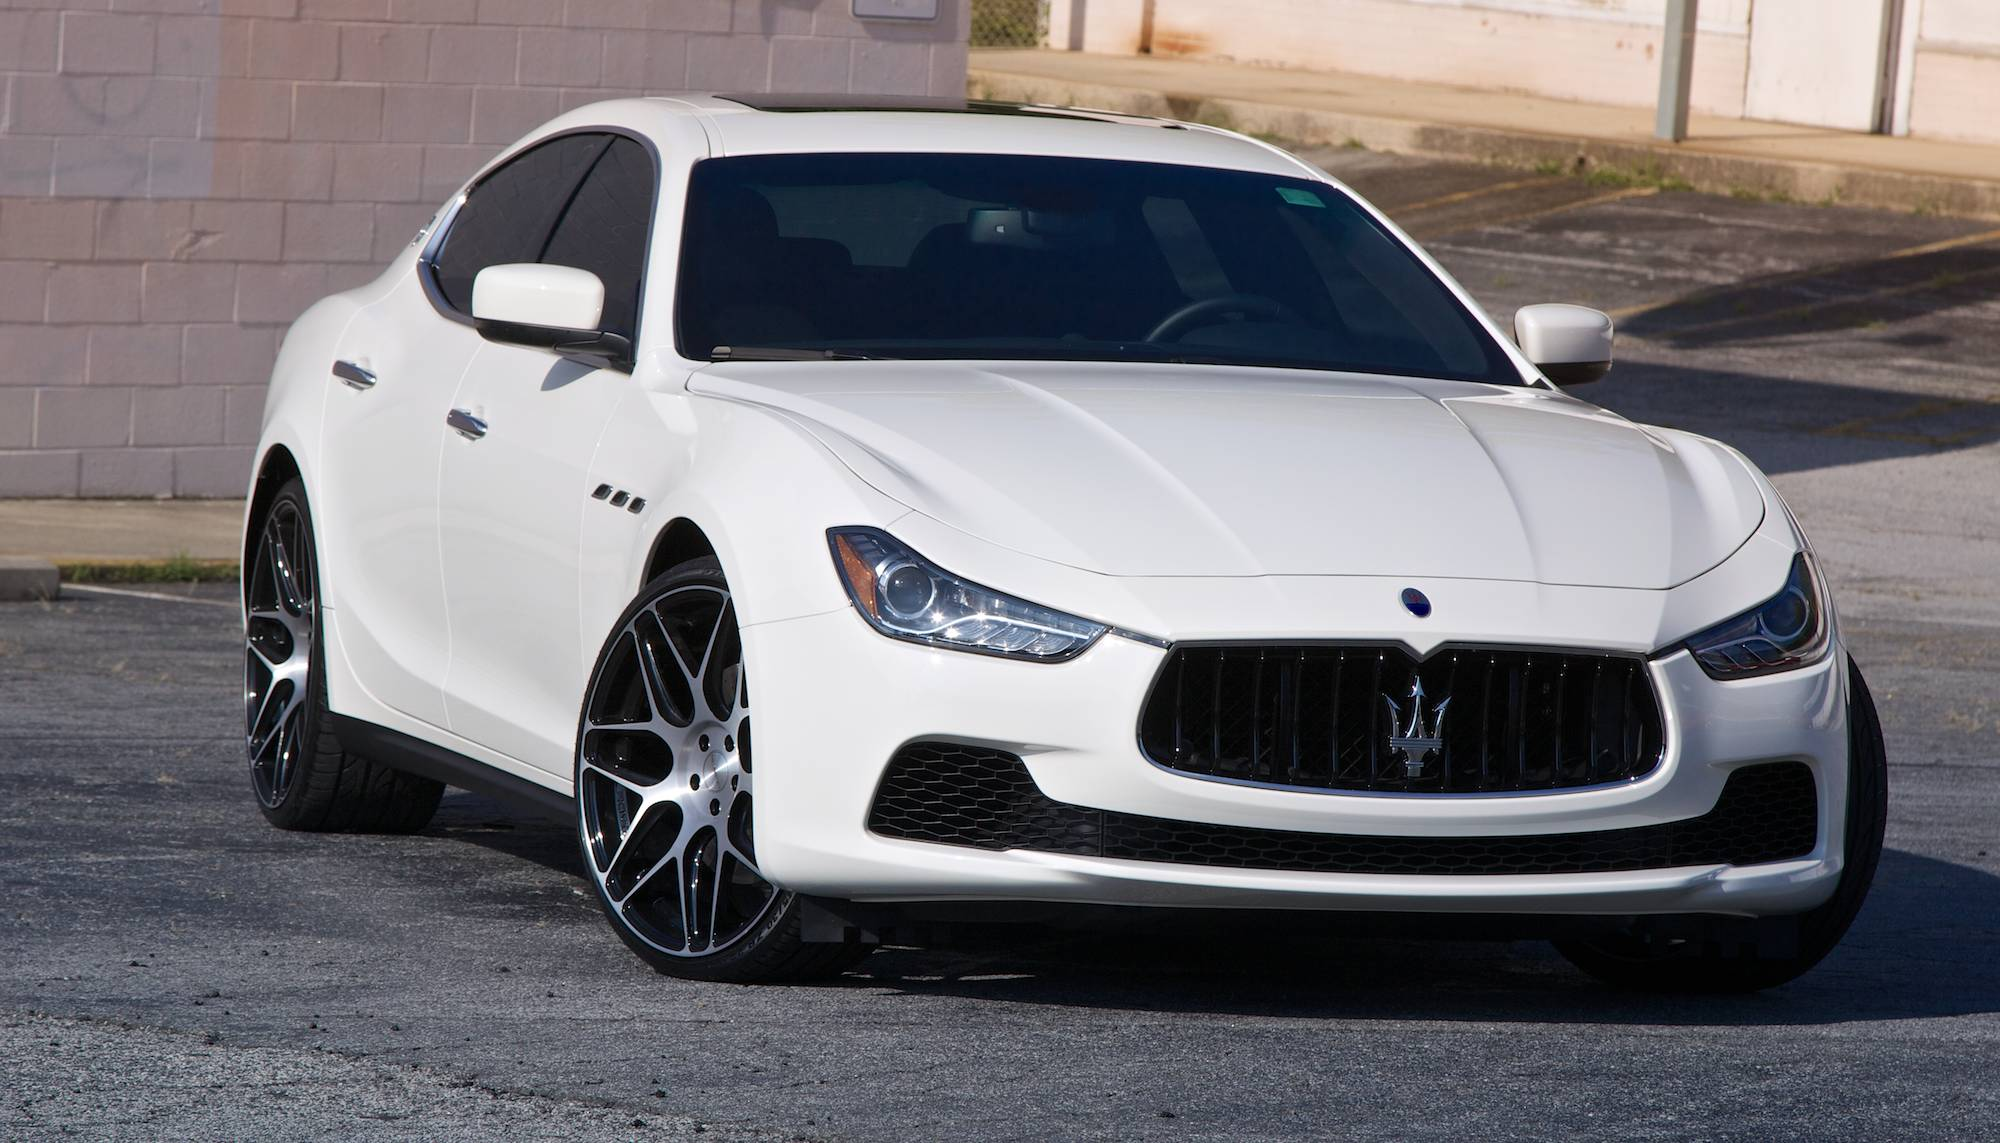 maserati ghibli : luxury sedan car review | gearopen